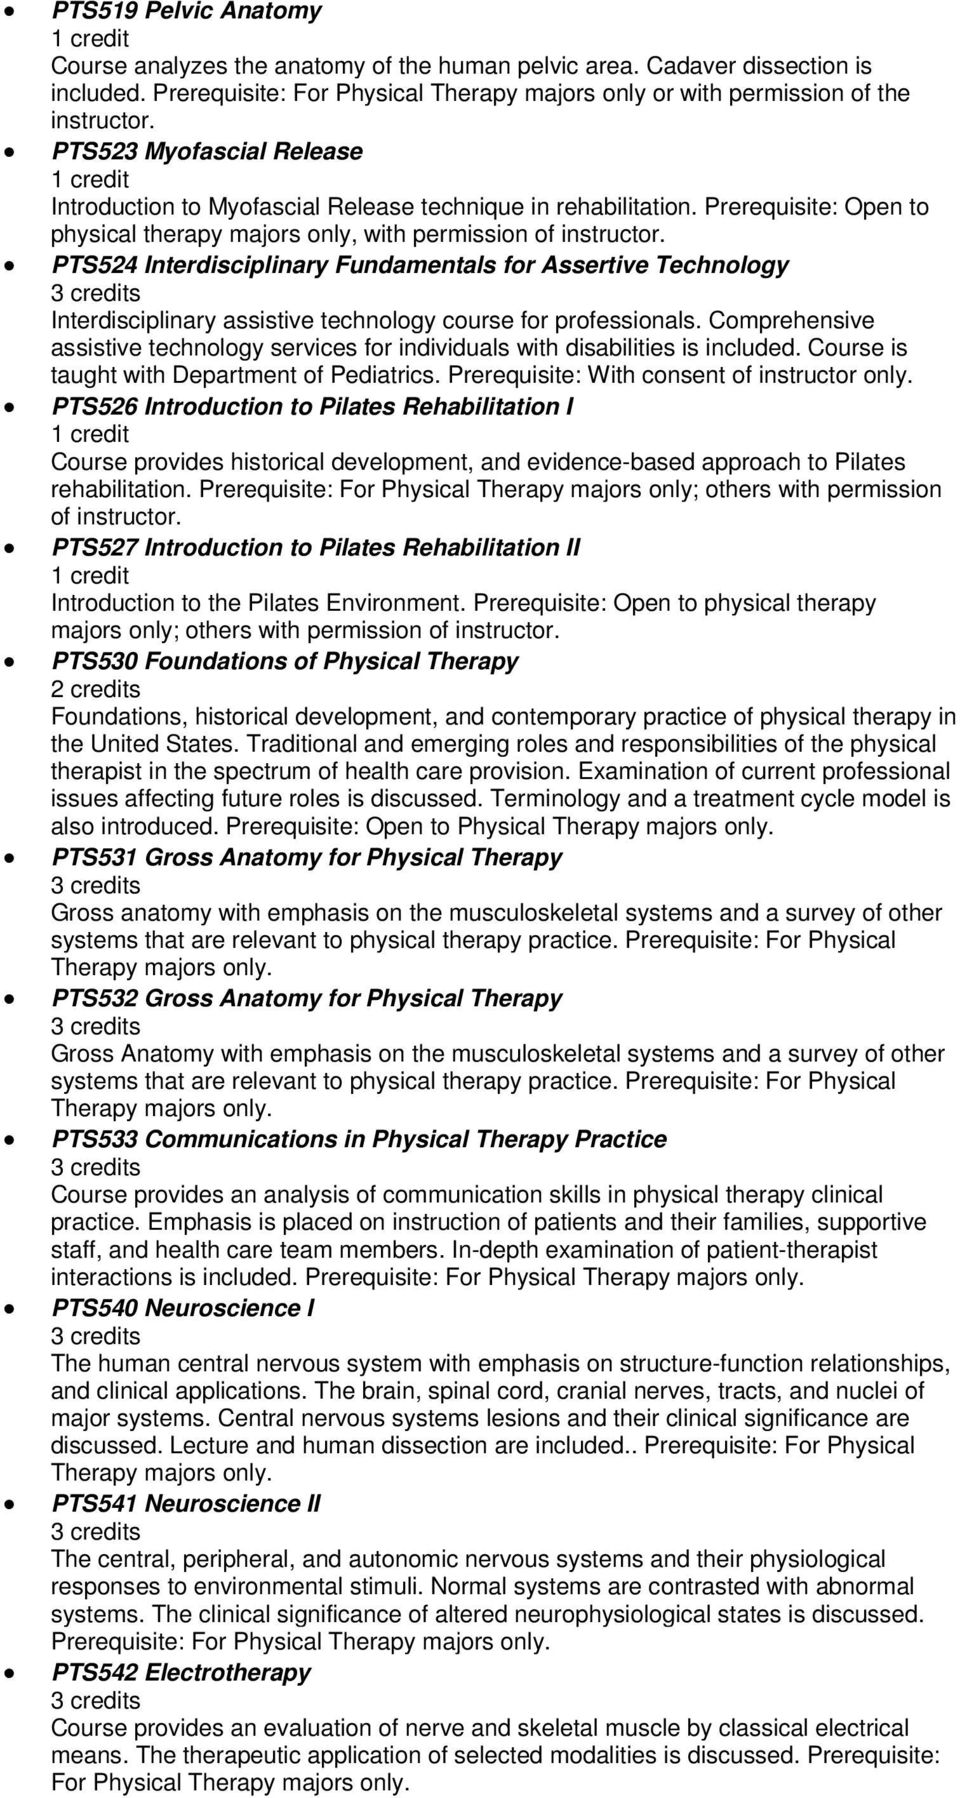 Prerequisite: Open to physical therapy majors only, with permission of PTS524 Interdisciplinary Fundamentals for Assertive Technology Interdisciplinary assistive technology course for professionals.